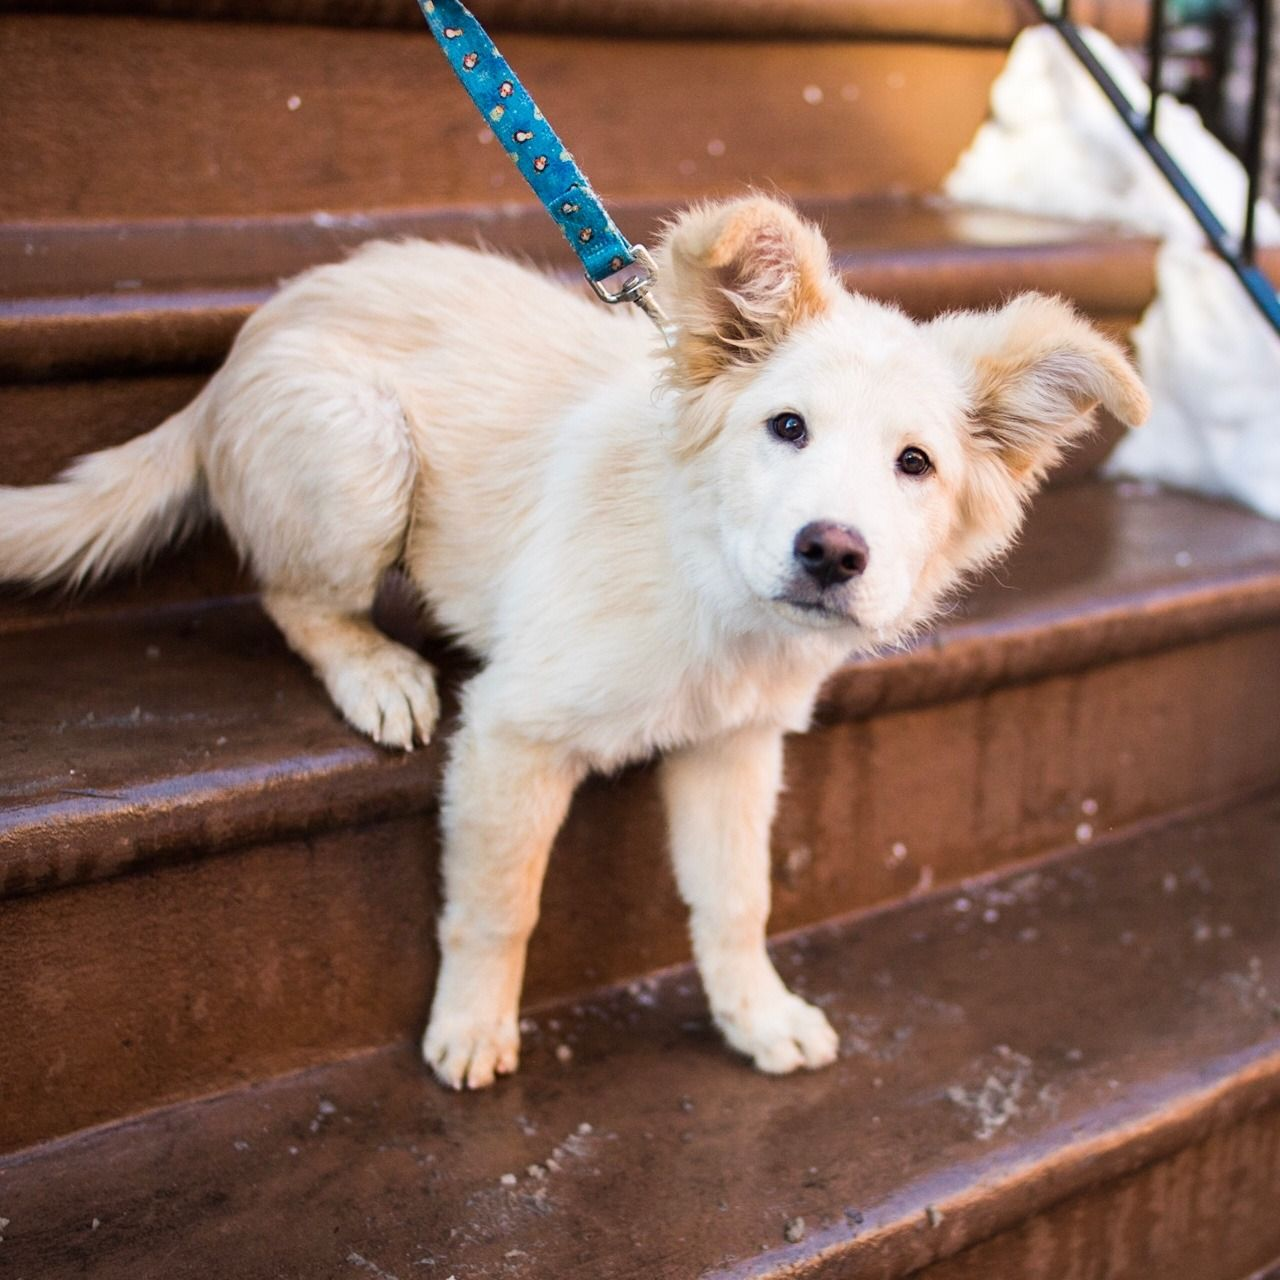 Thedogist Larry Chow Chow Golden Retriever Mix 4 M O 9th 2nd Ave New York Ny We Ve Only Had Him F Dogs Golden Retriever Golden Retriever Mix Dogs